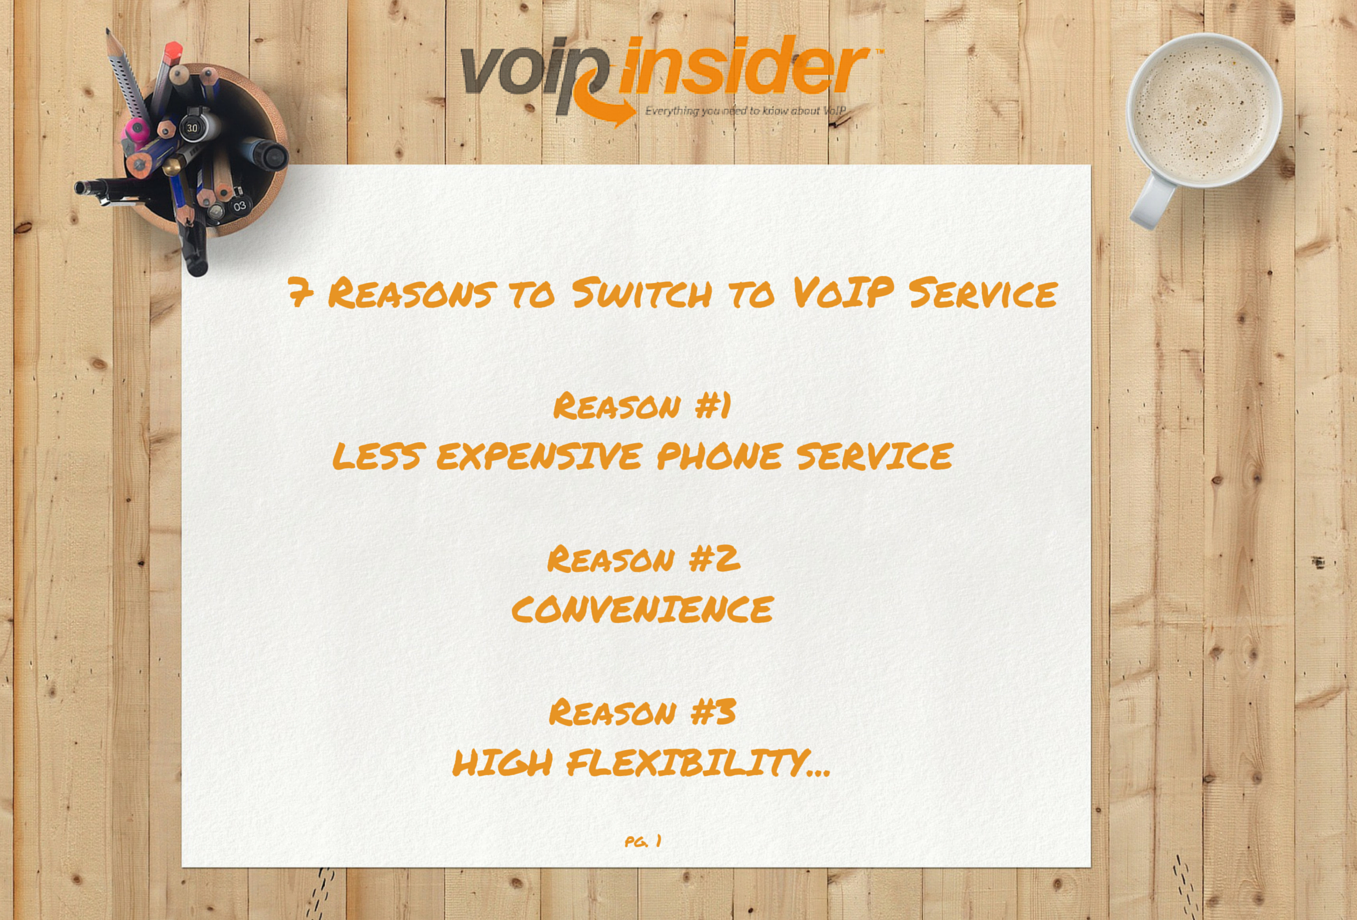 7 Reasons to Switch to VoIP Service (1)